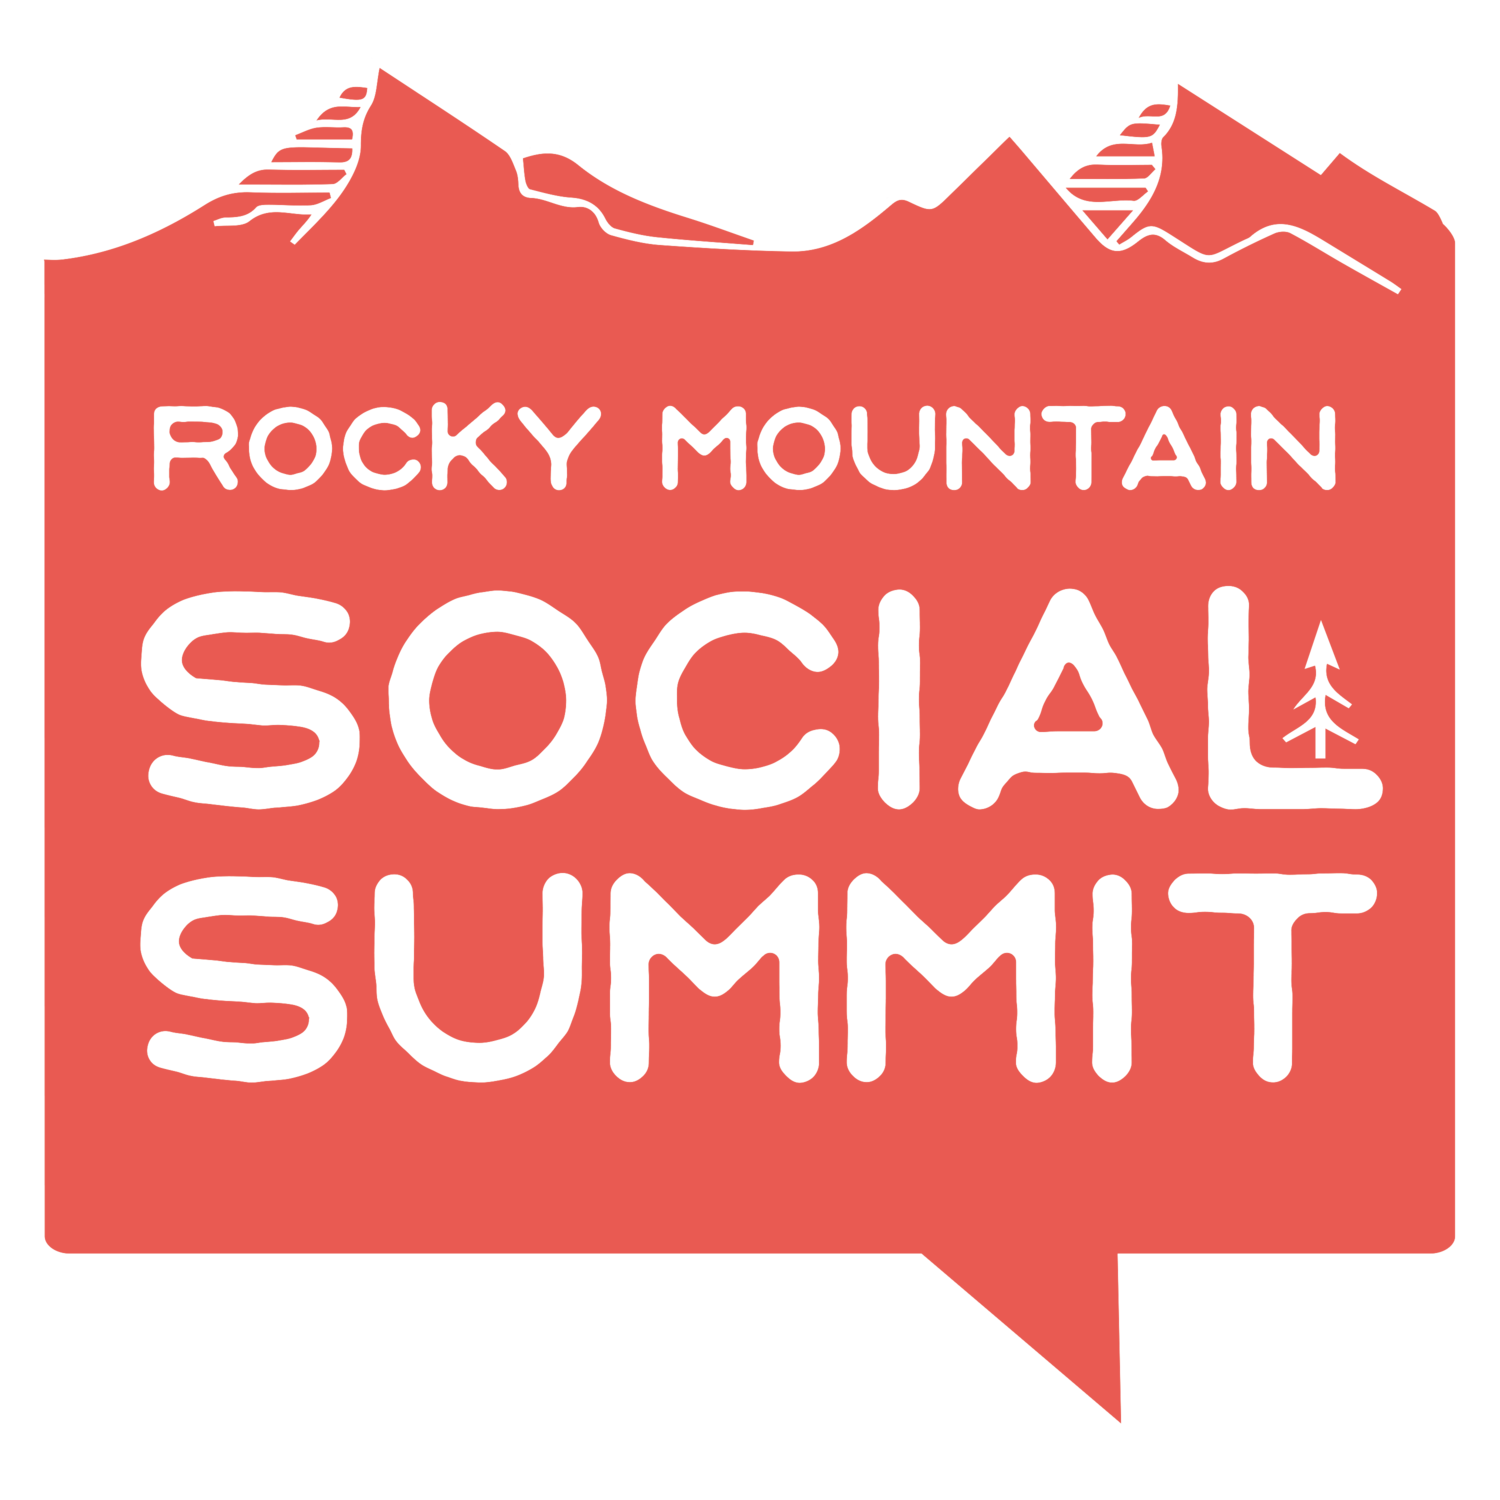 Luncheon clipart social event. Rocky mountain summit